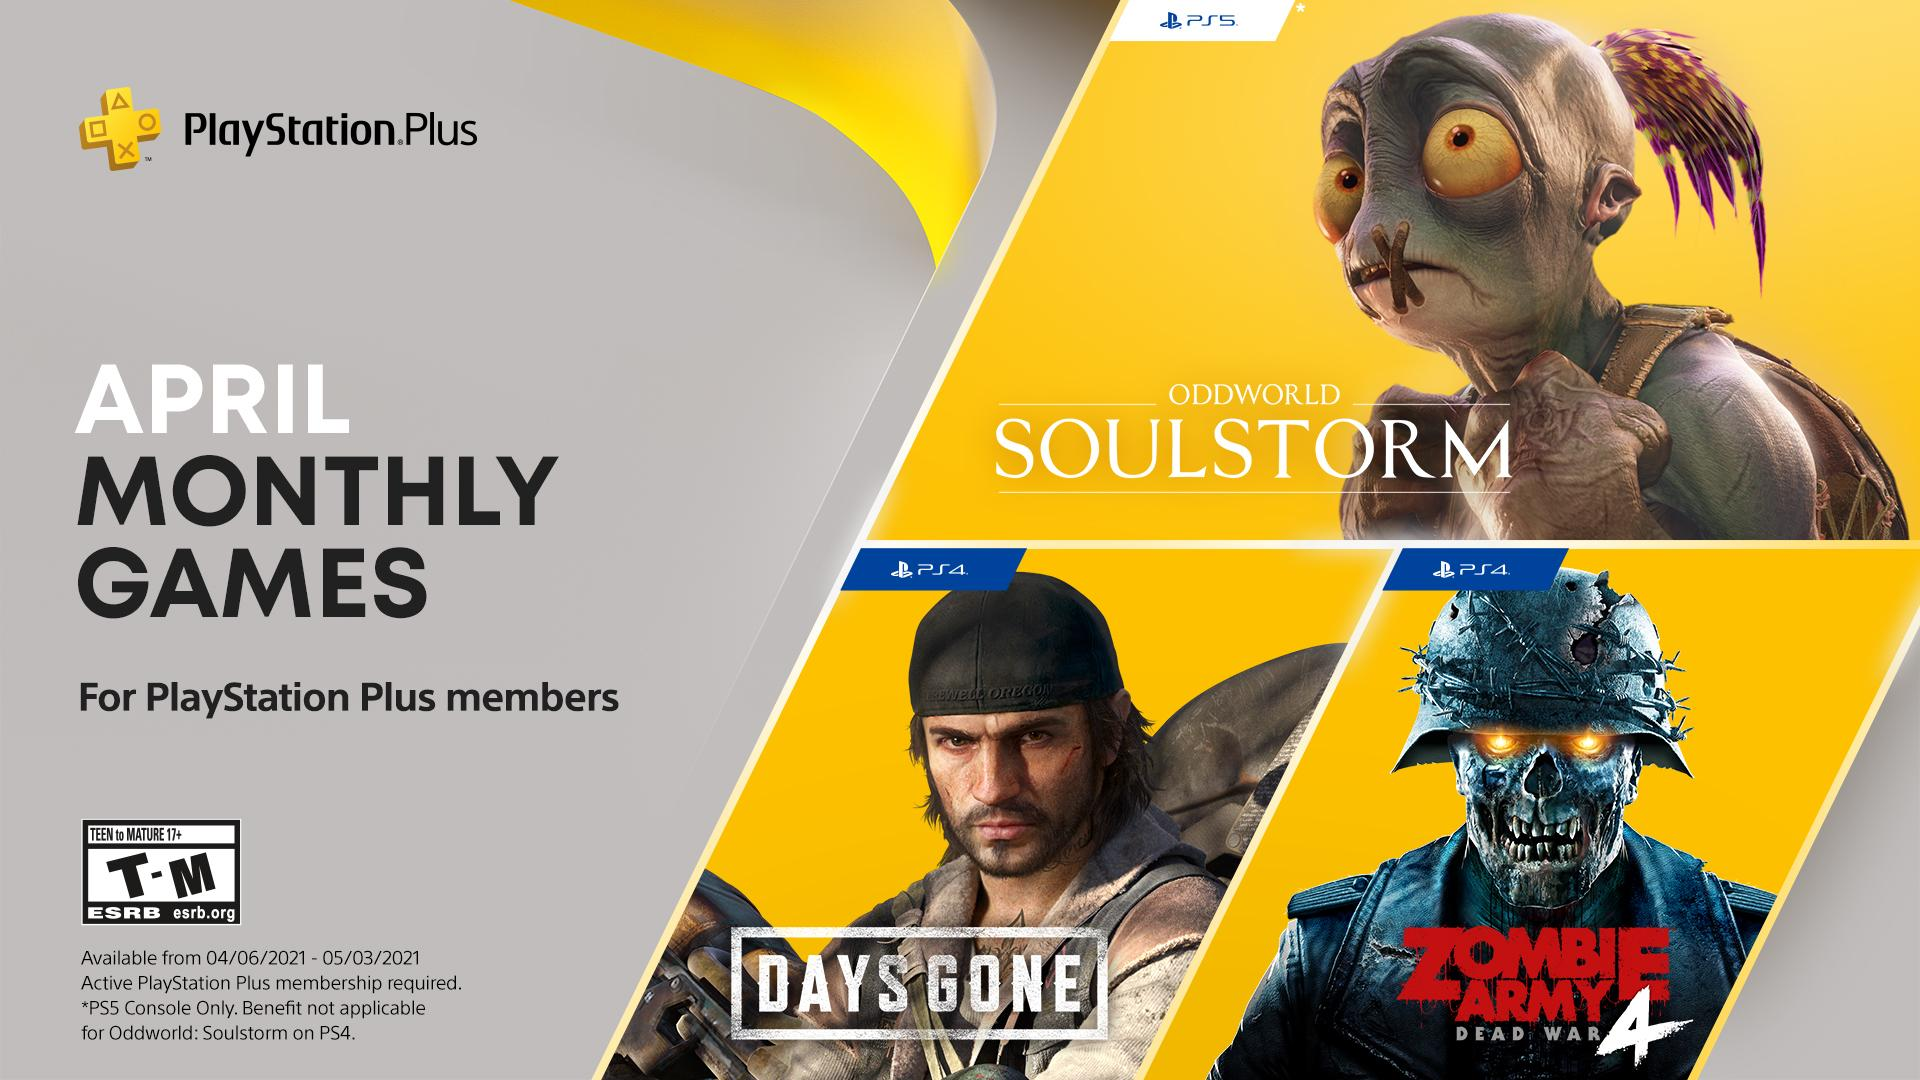 Ps plus de abril traz days gone, oddworld e muito mais. Lute contra hordas de zumbis, explore mundos bizarros e detone mortos-vivos nazistas nos games da ps plus de abril de 2021